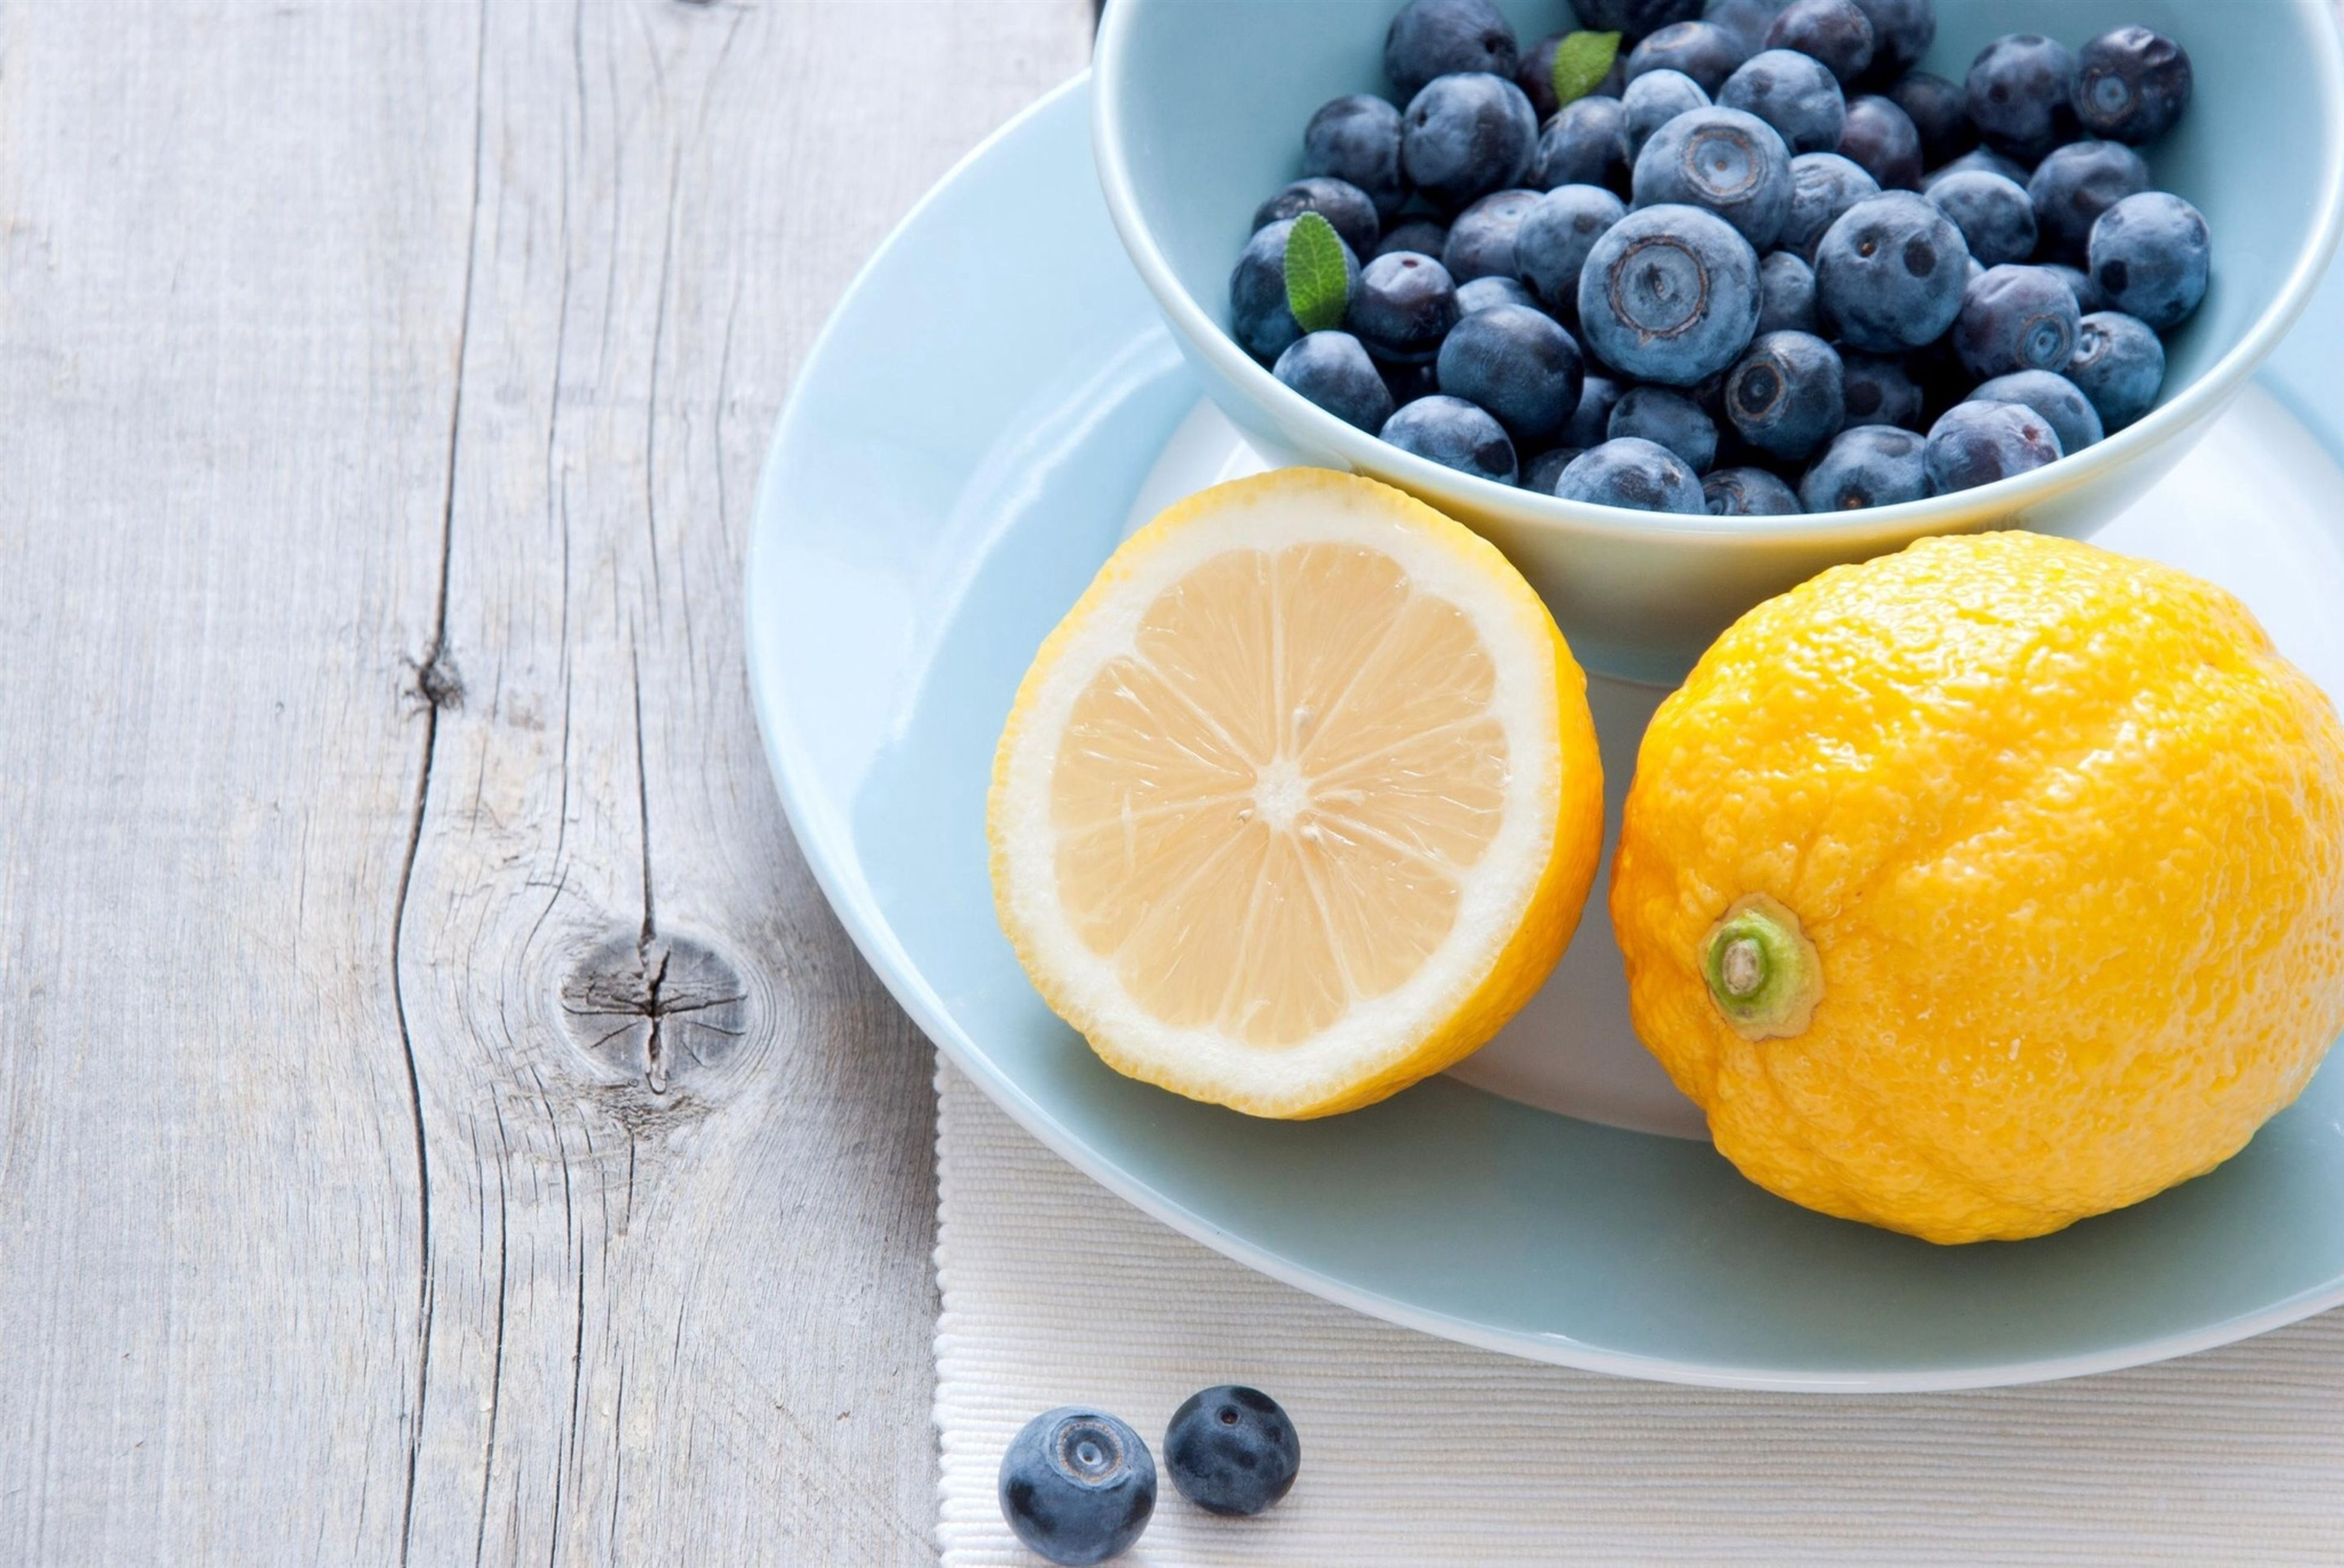 food and drink, food, freshness, healthy eating, fruit, bowl, indoors, table, still life, directly above, high angle view, plate, yellow, circle, no people, overhead view, close-up, organic, orange - fruit, ripe